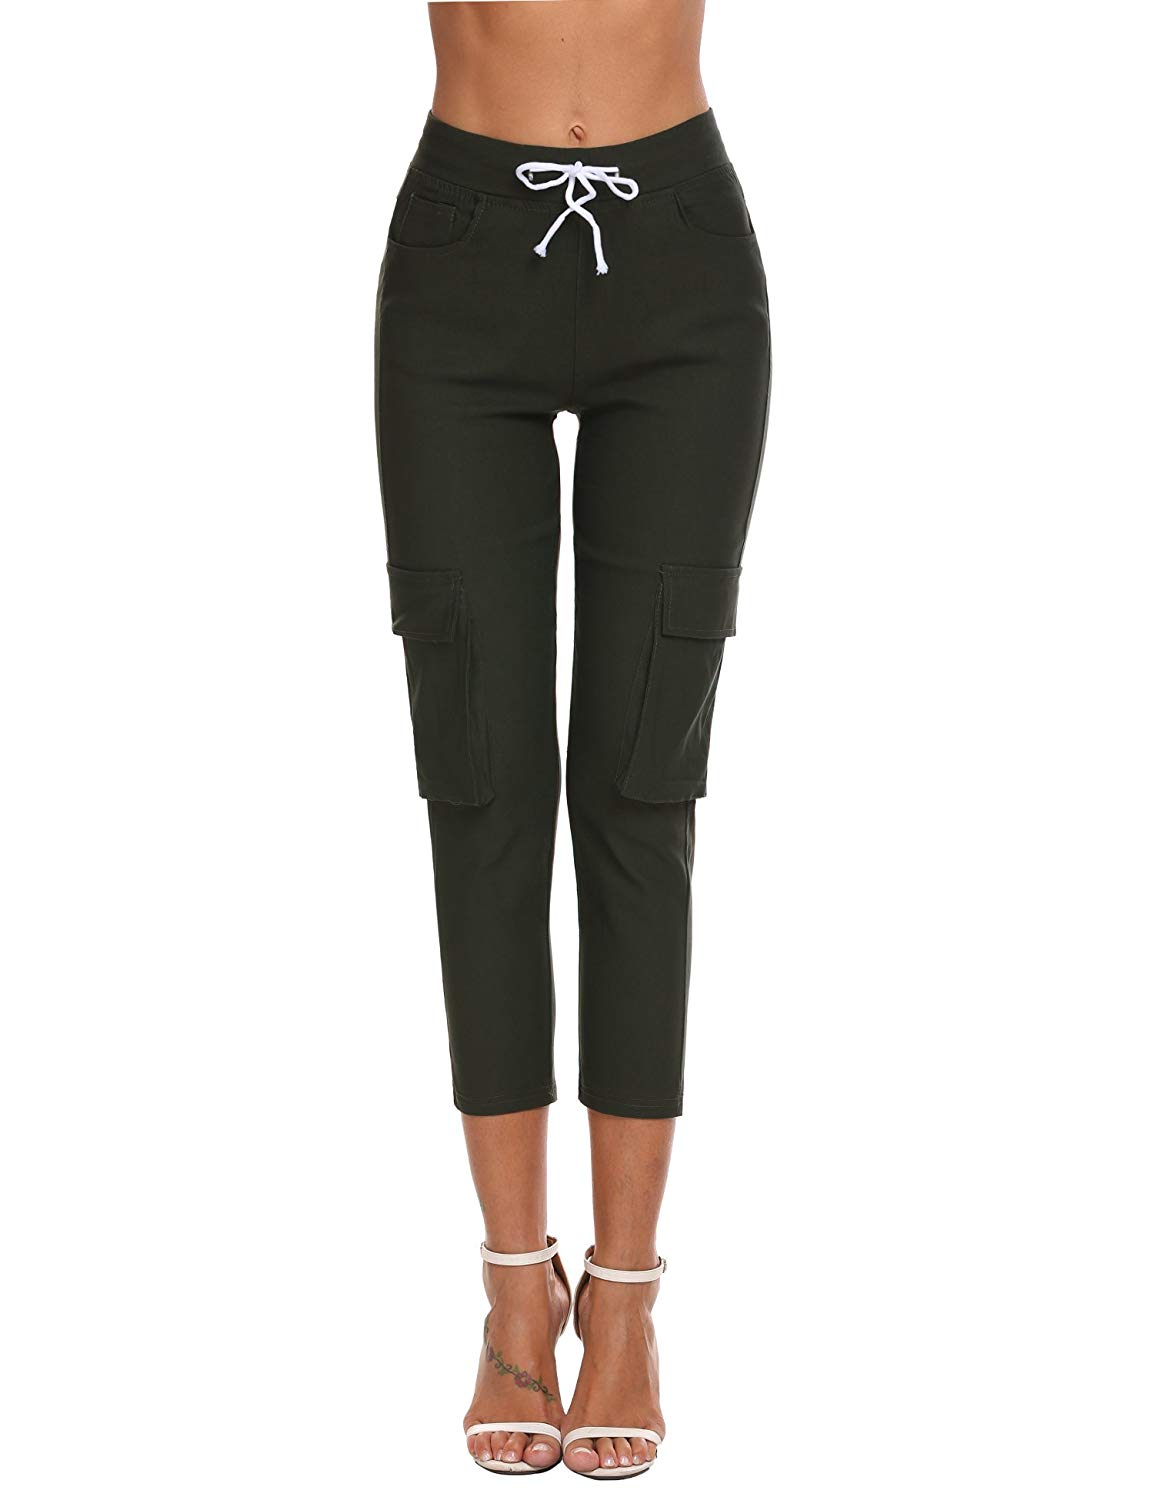 M/&S/&W Womens Solid Color Stretch Drawstring Casual Skinny Pants